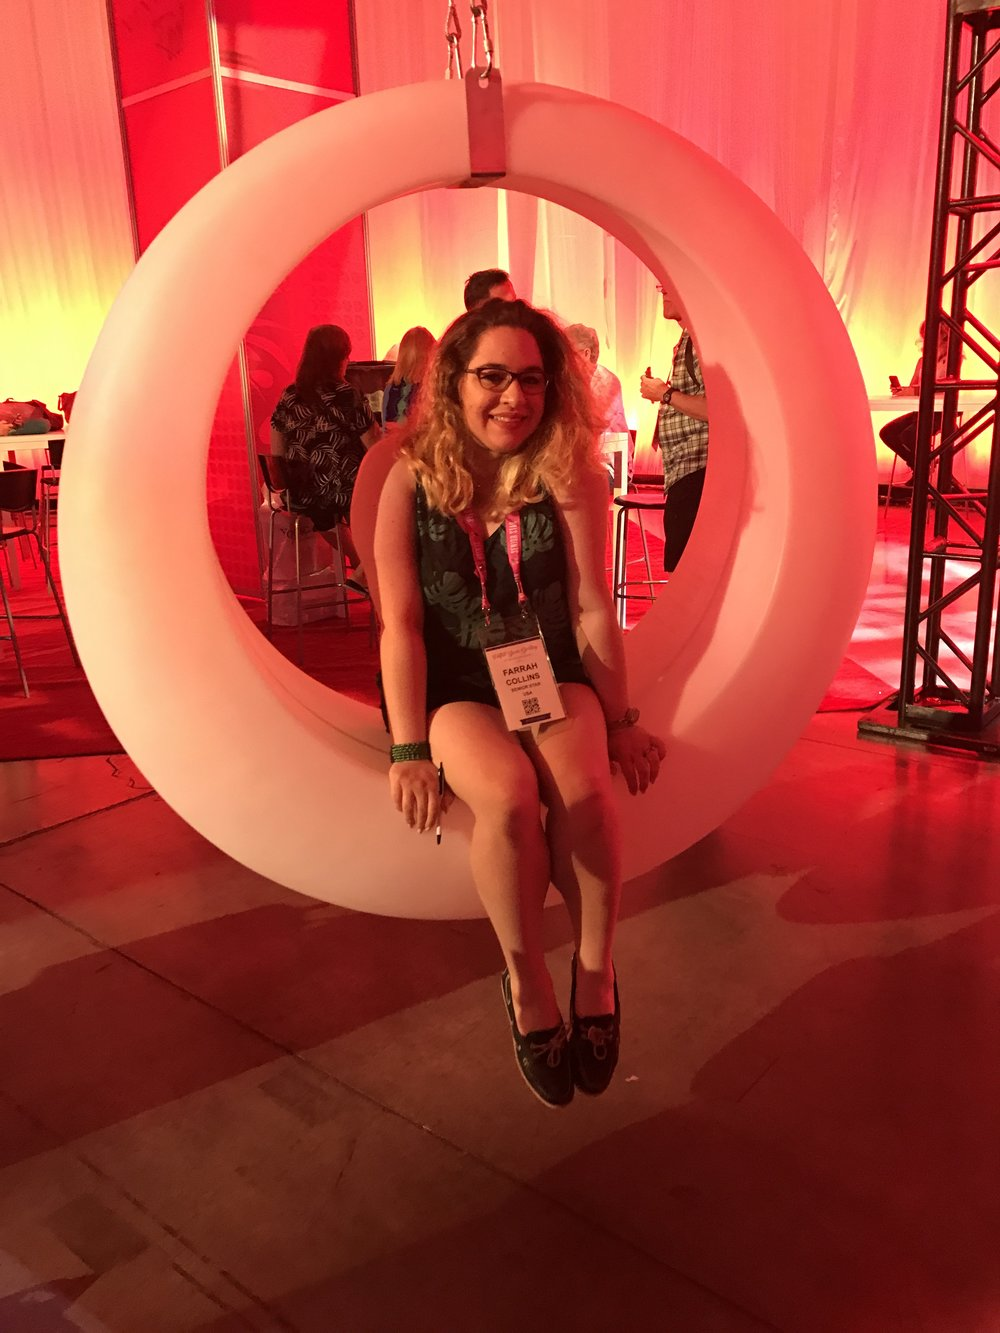 How cool are these swings in Club Red?? Super fun, too!